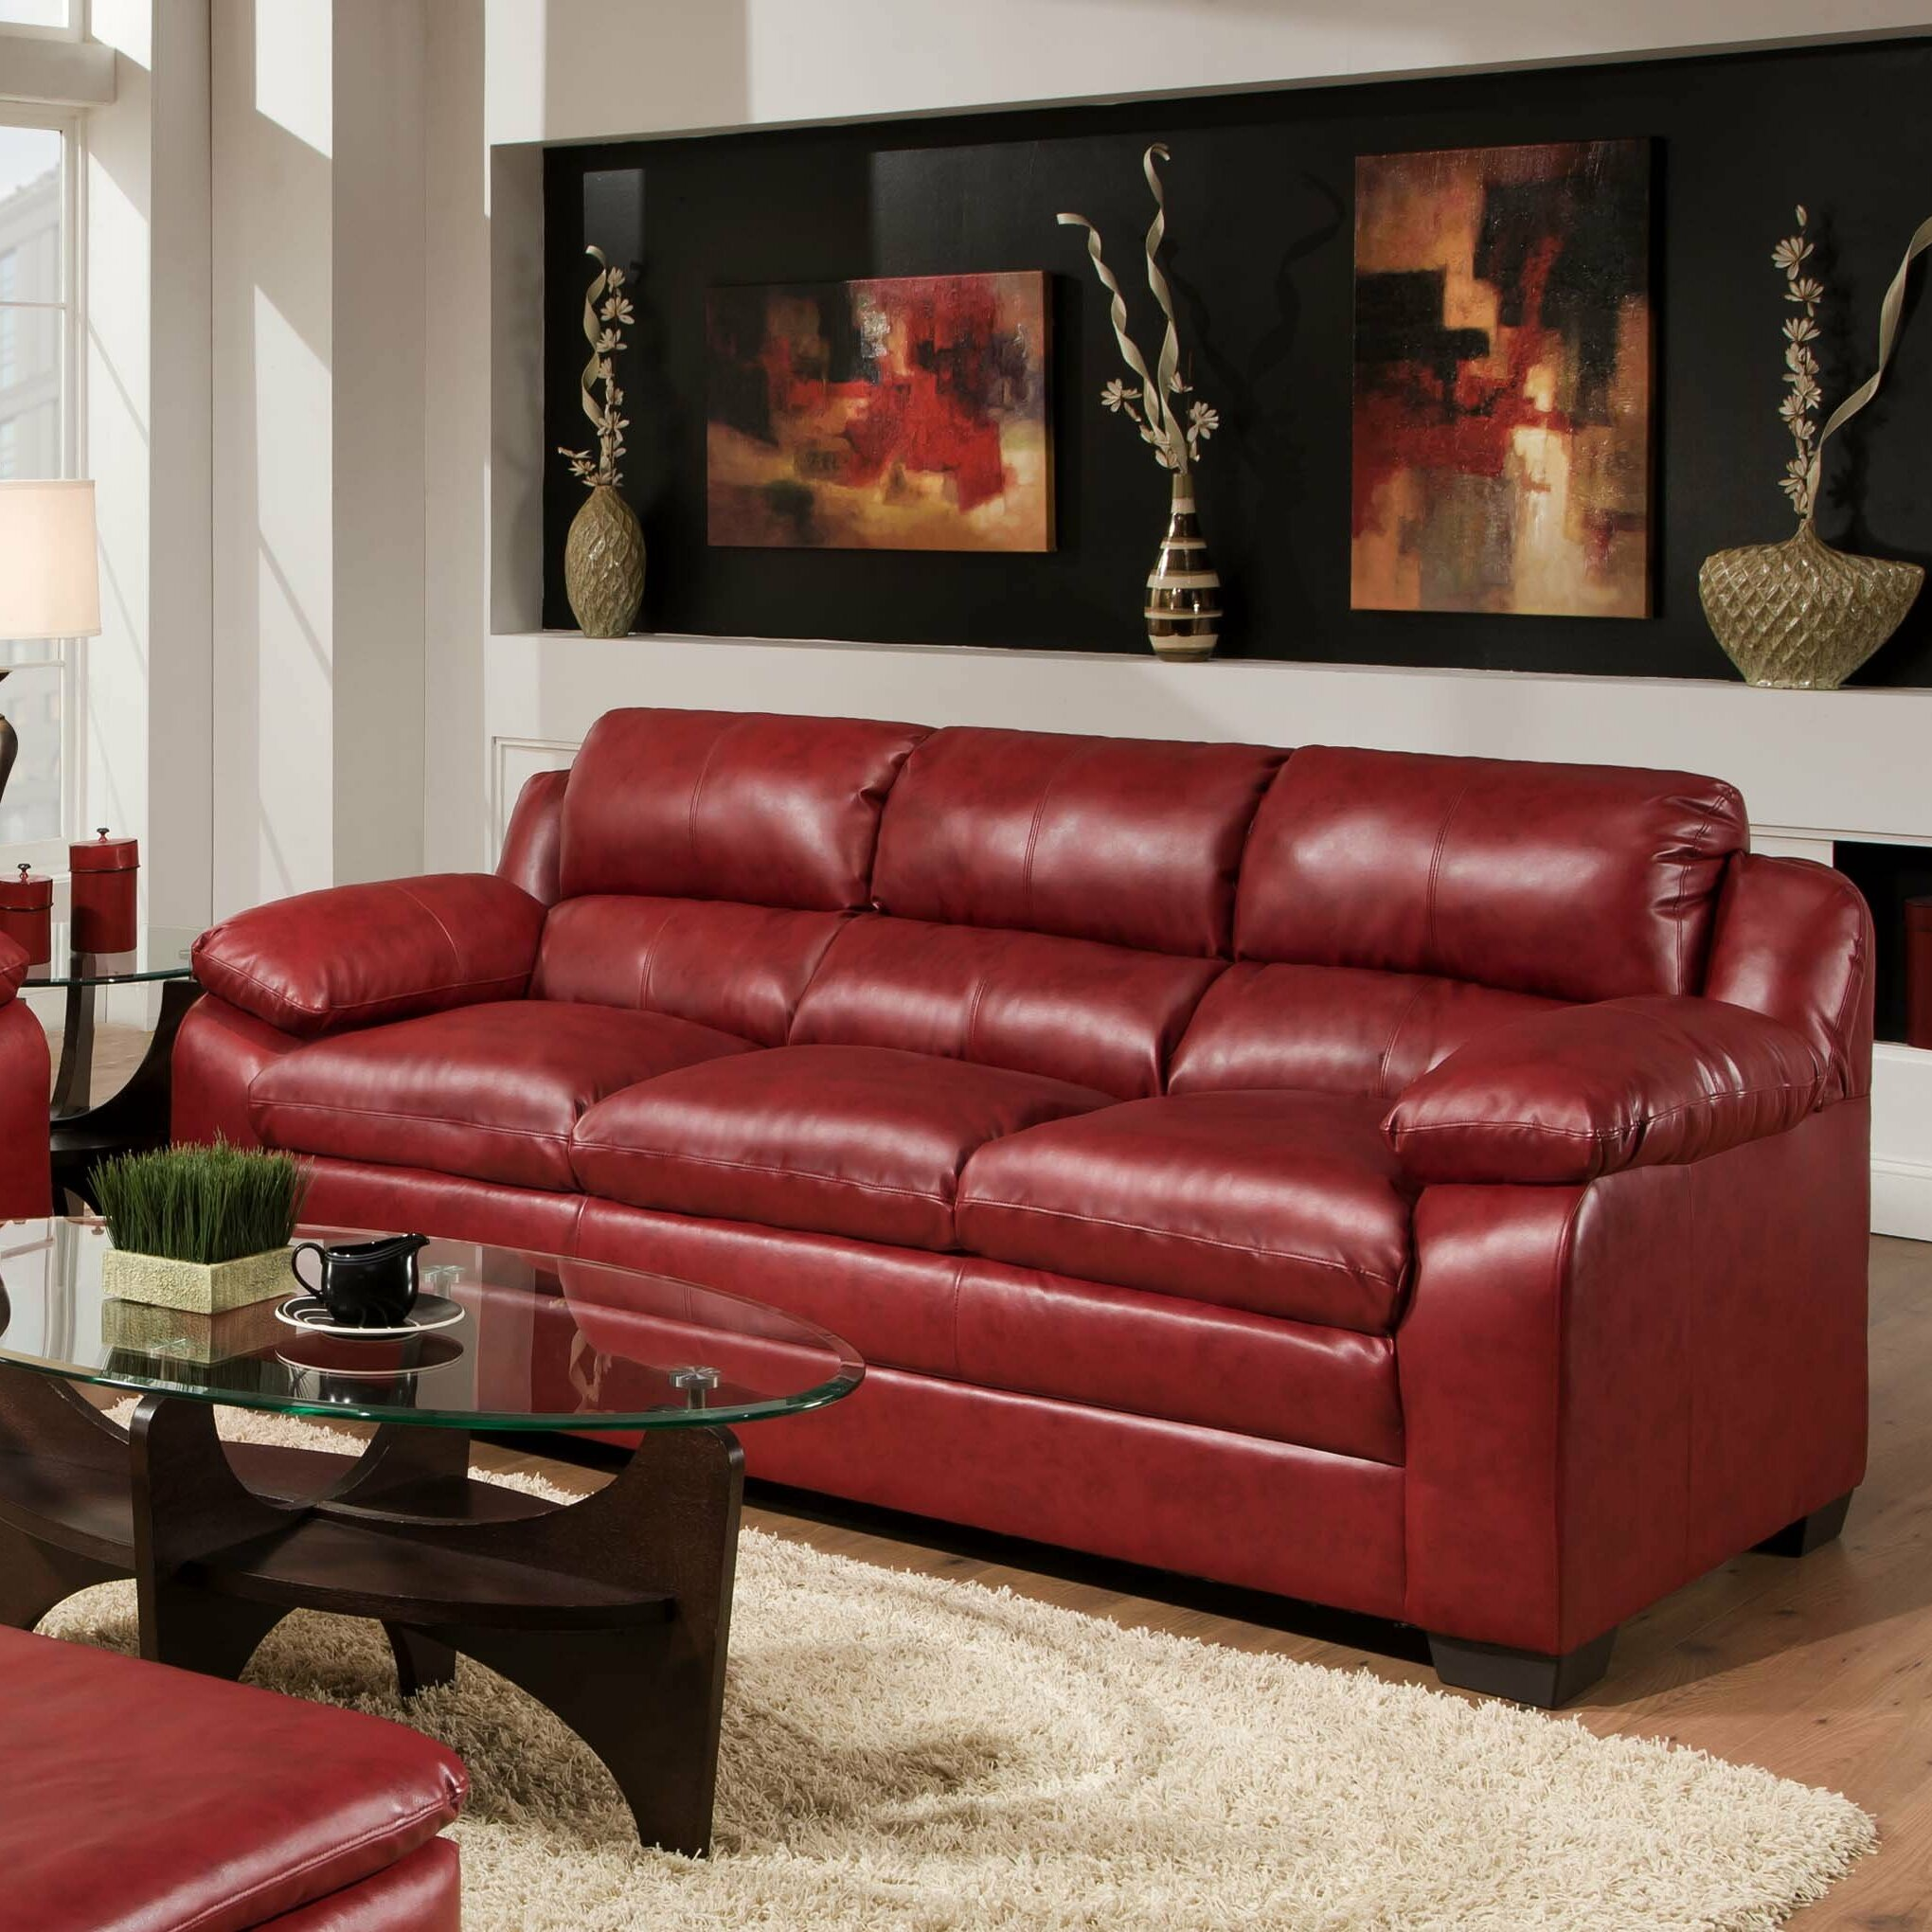 Simmons upholstery soho sofa reviews wayfair for Simmons living room furniture